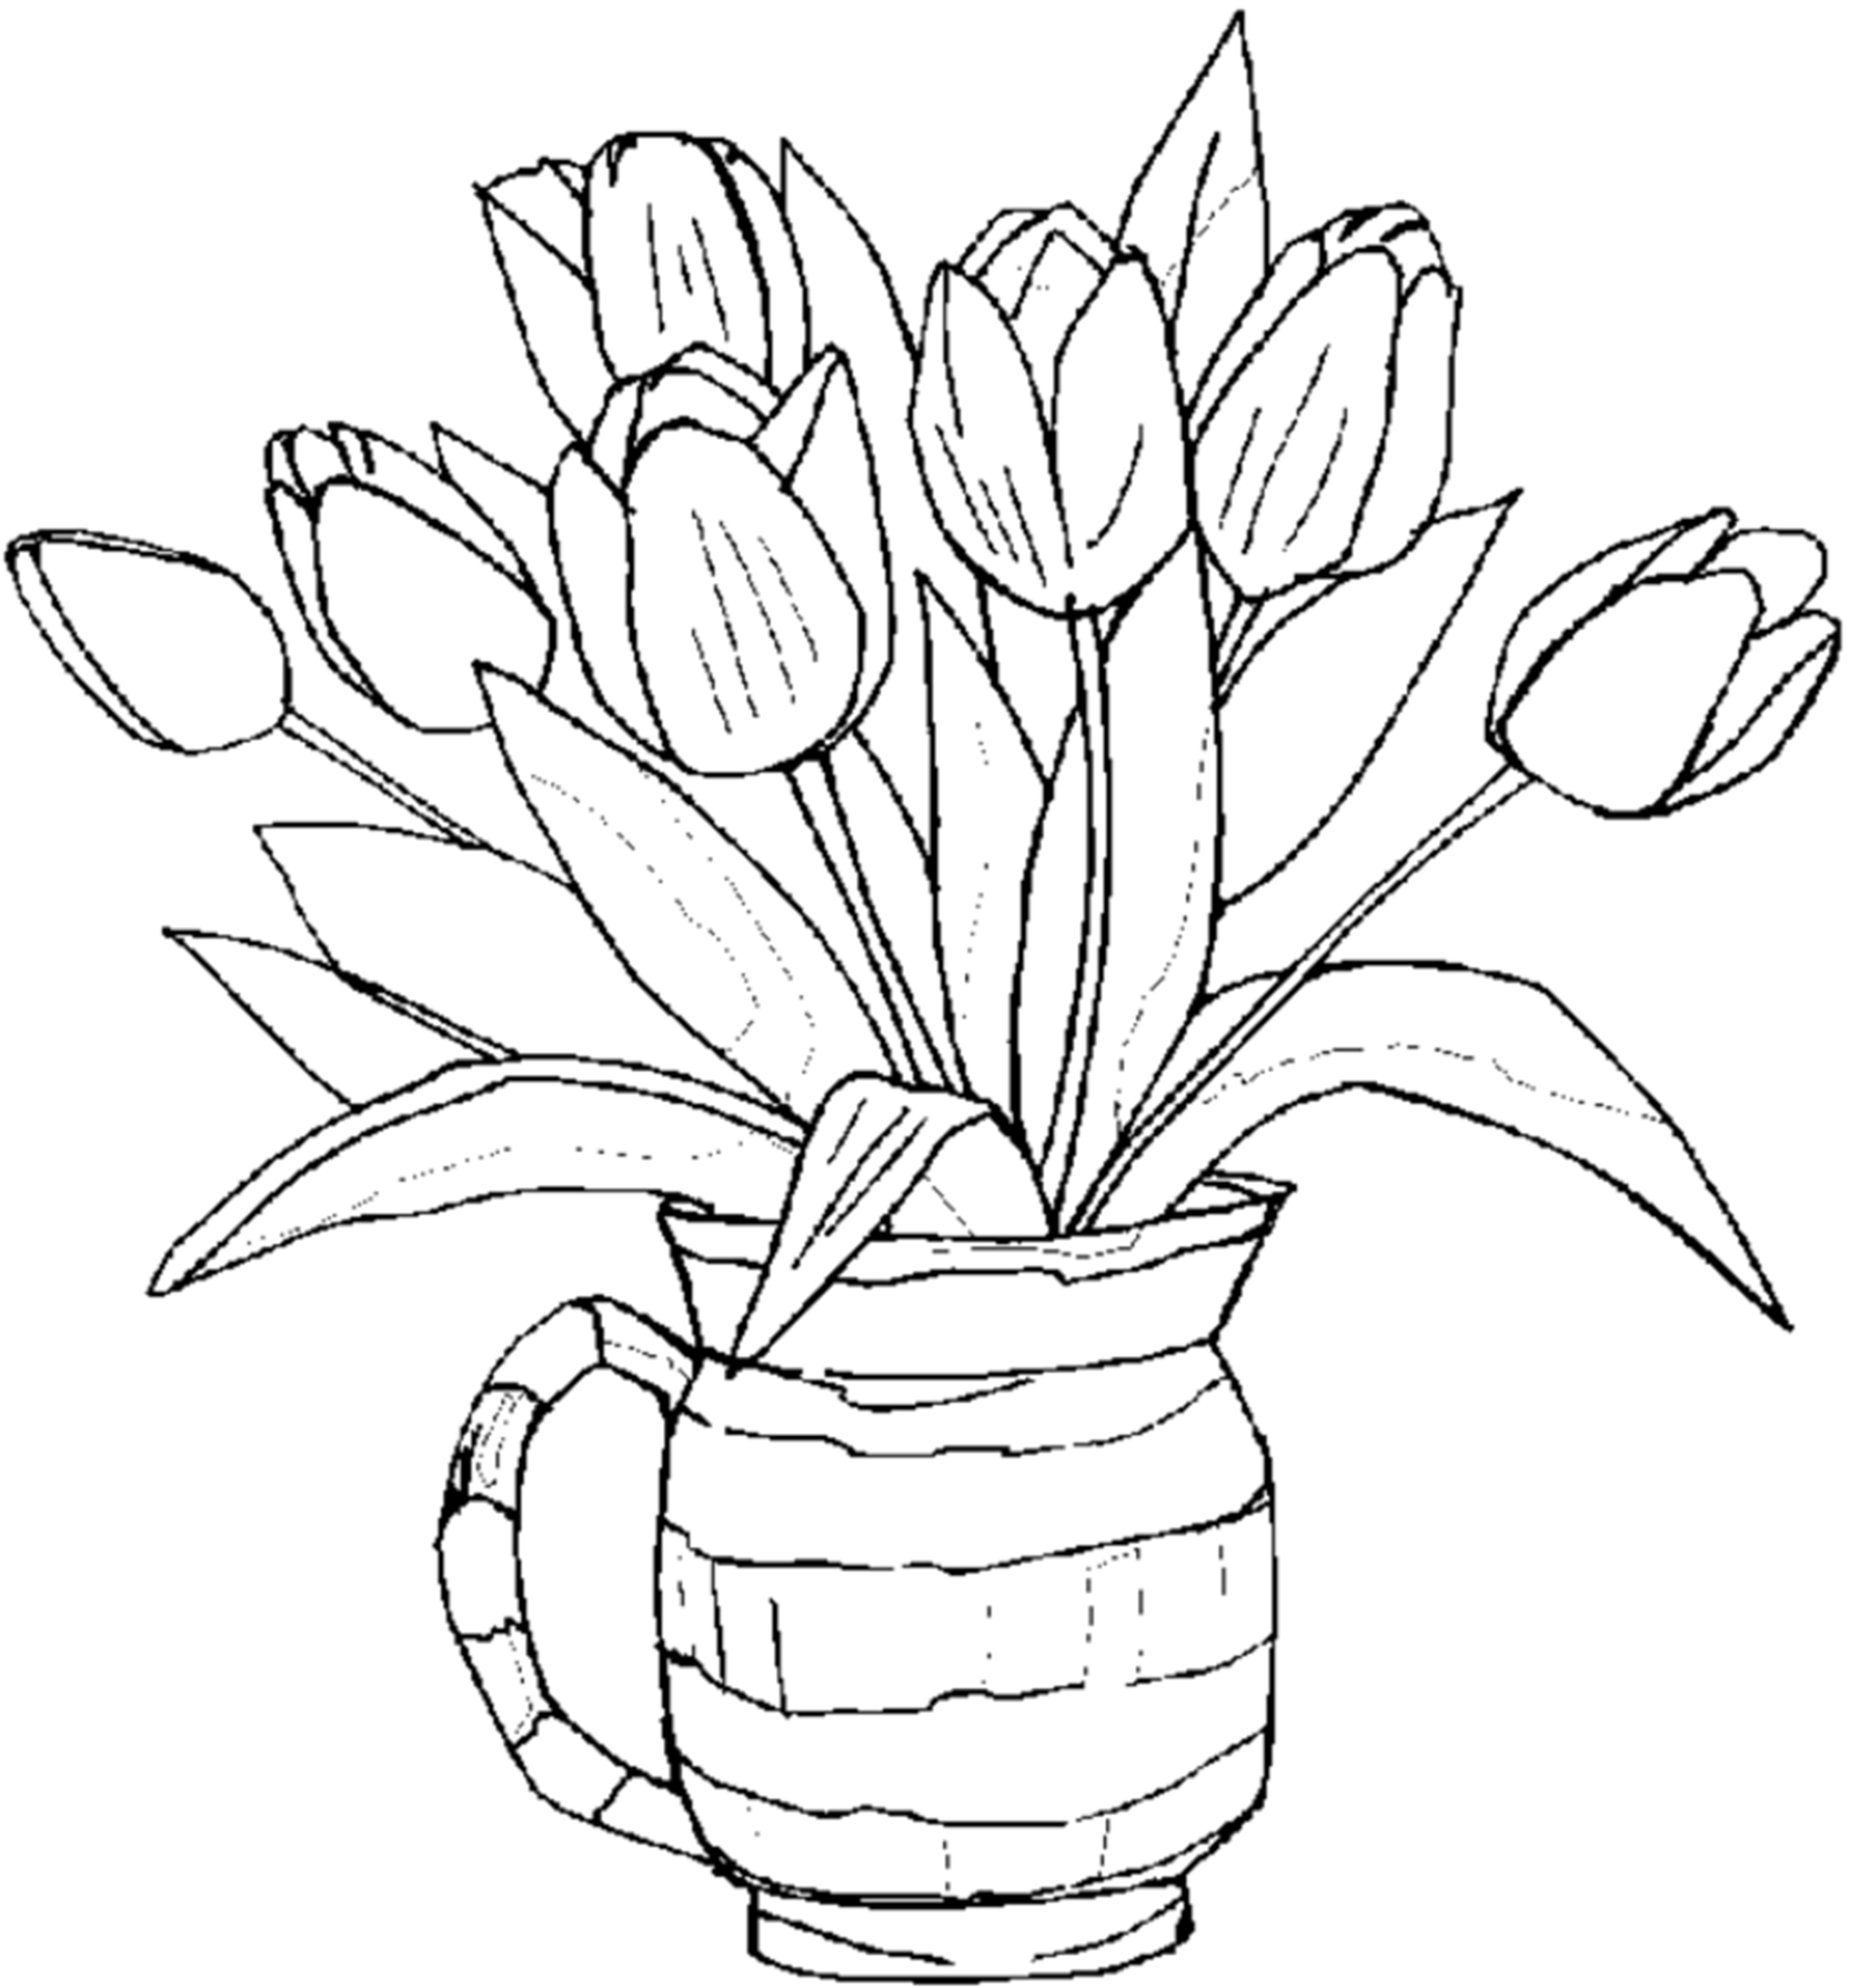 coloring pages for adults to print flowers free printable flower coloring pages for kids best print flowers to coloring adults pages for